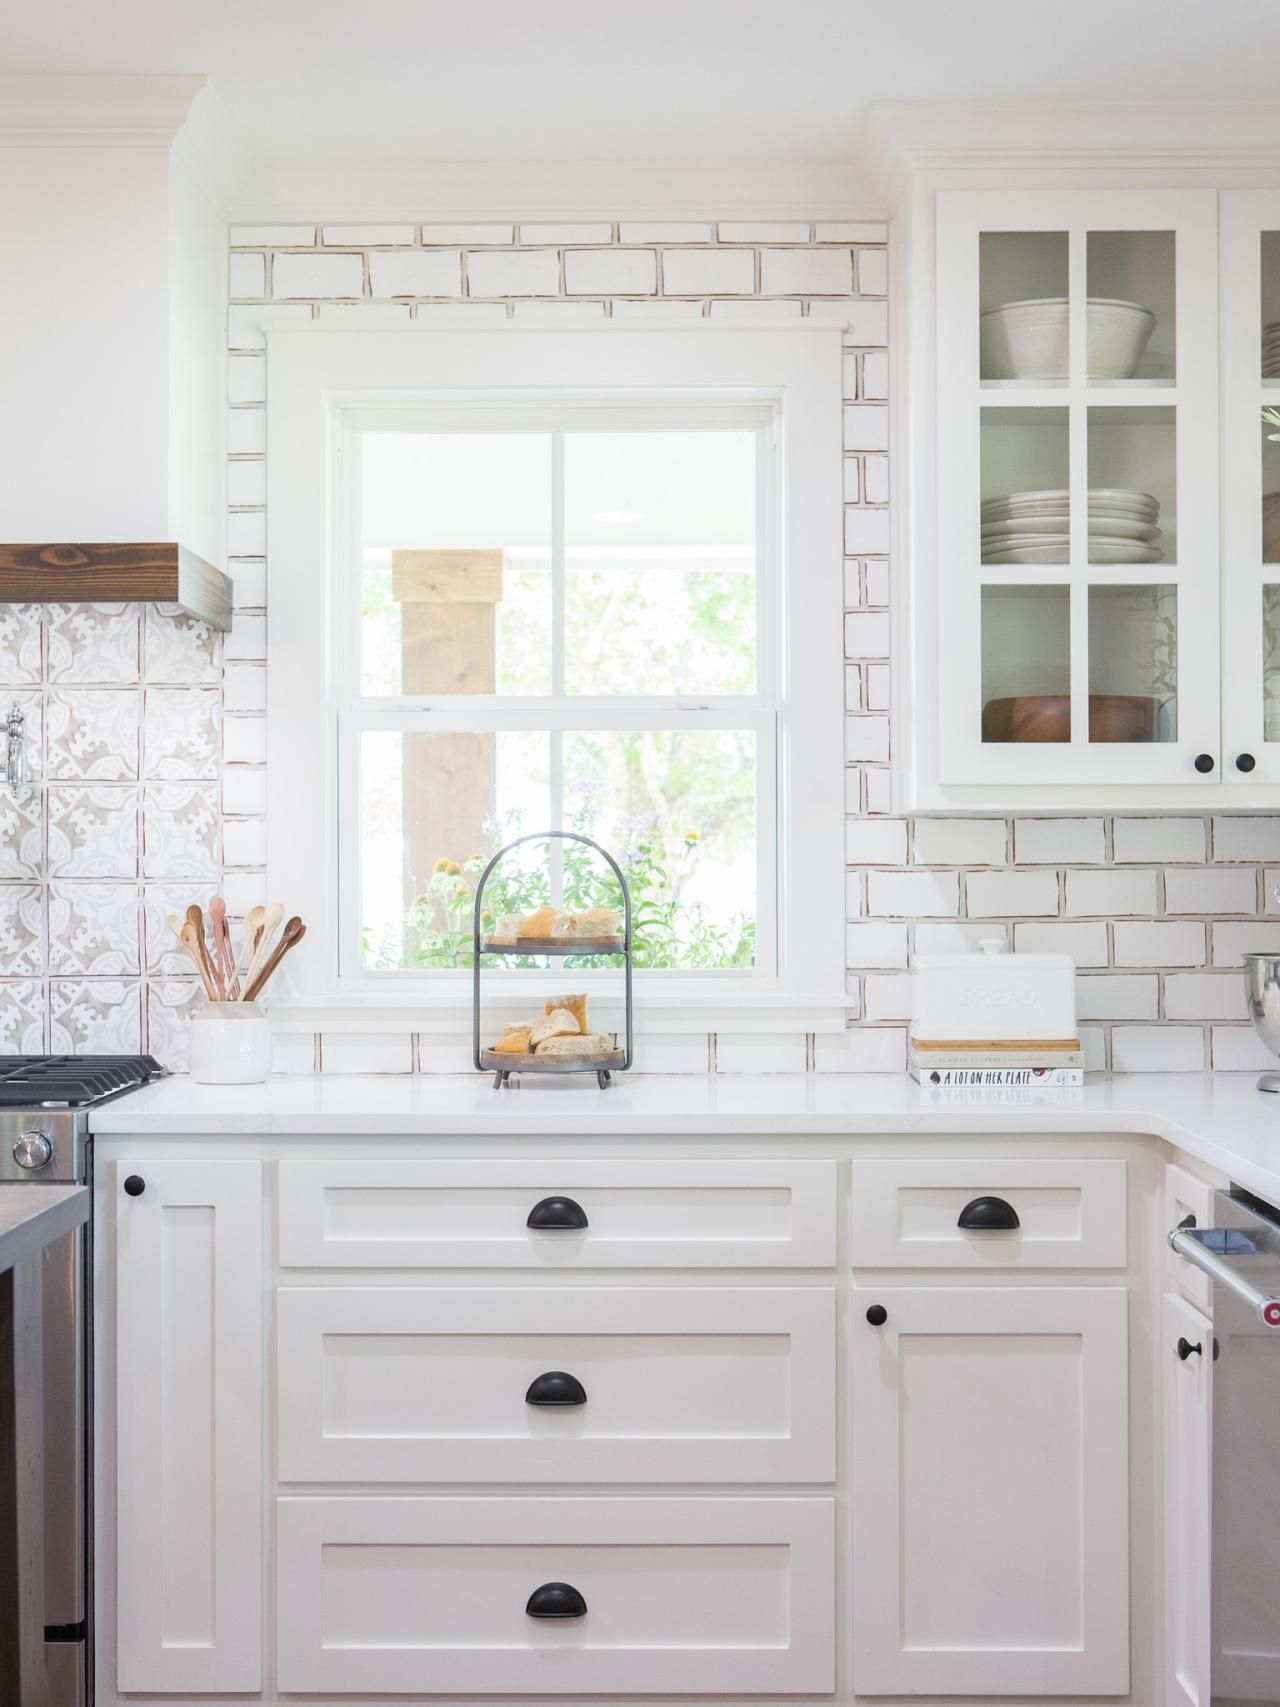 photos hgtv s fixer upper with chip and joanna gaines hgtv farmhouse kitchen design on farmhouse kitchen joanna gaines design id=52550